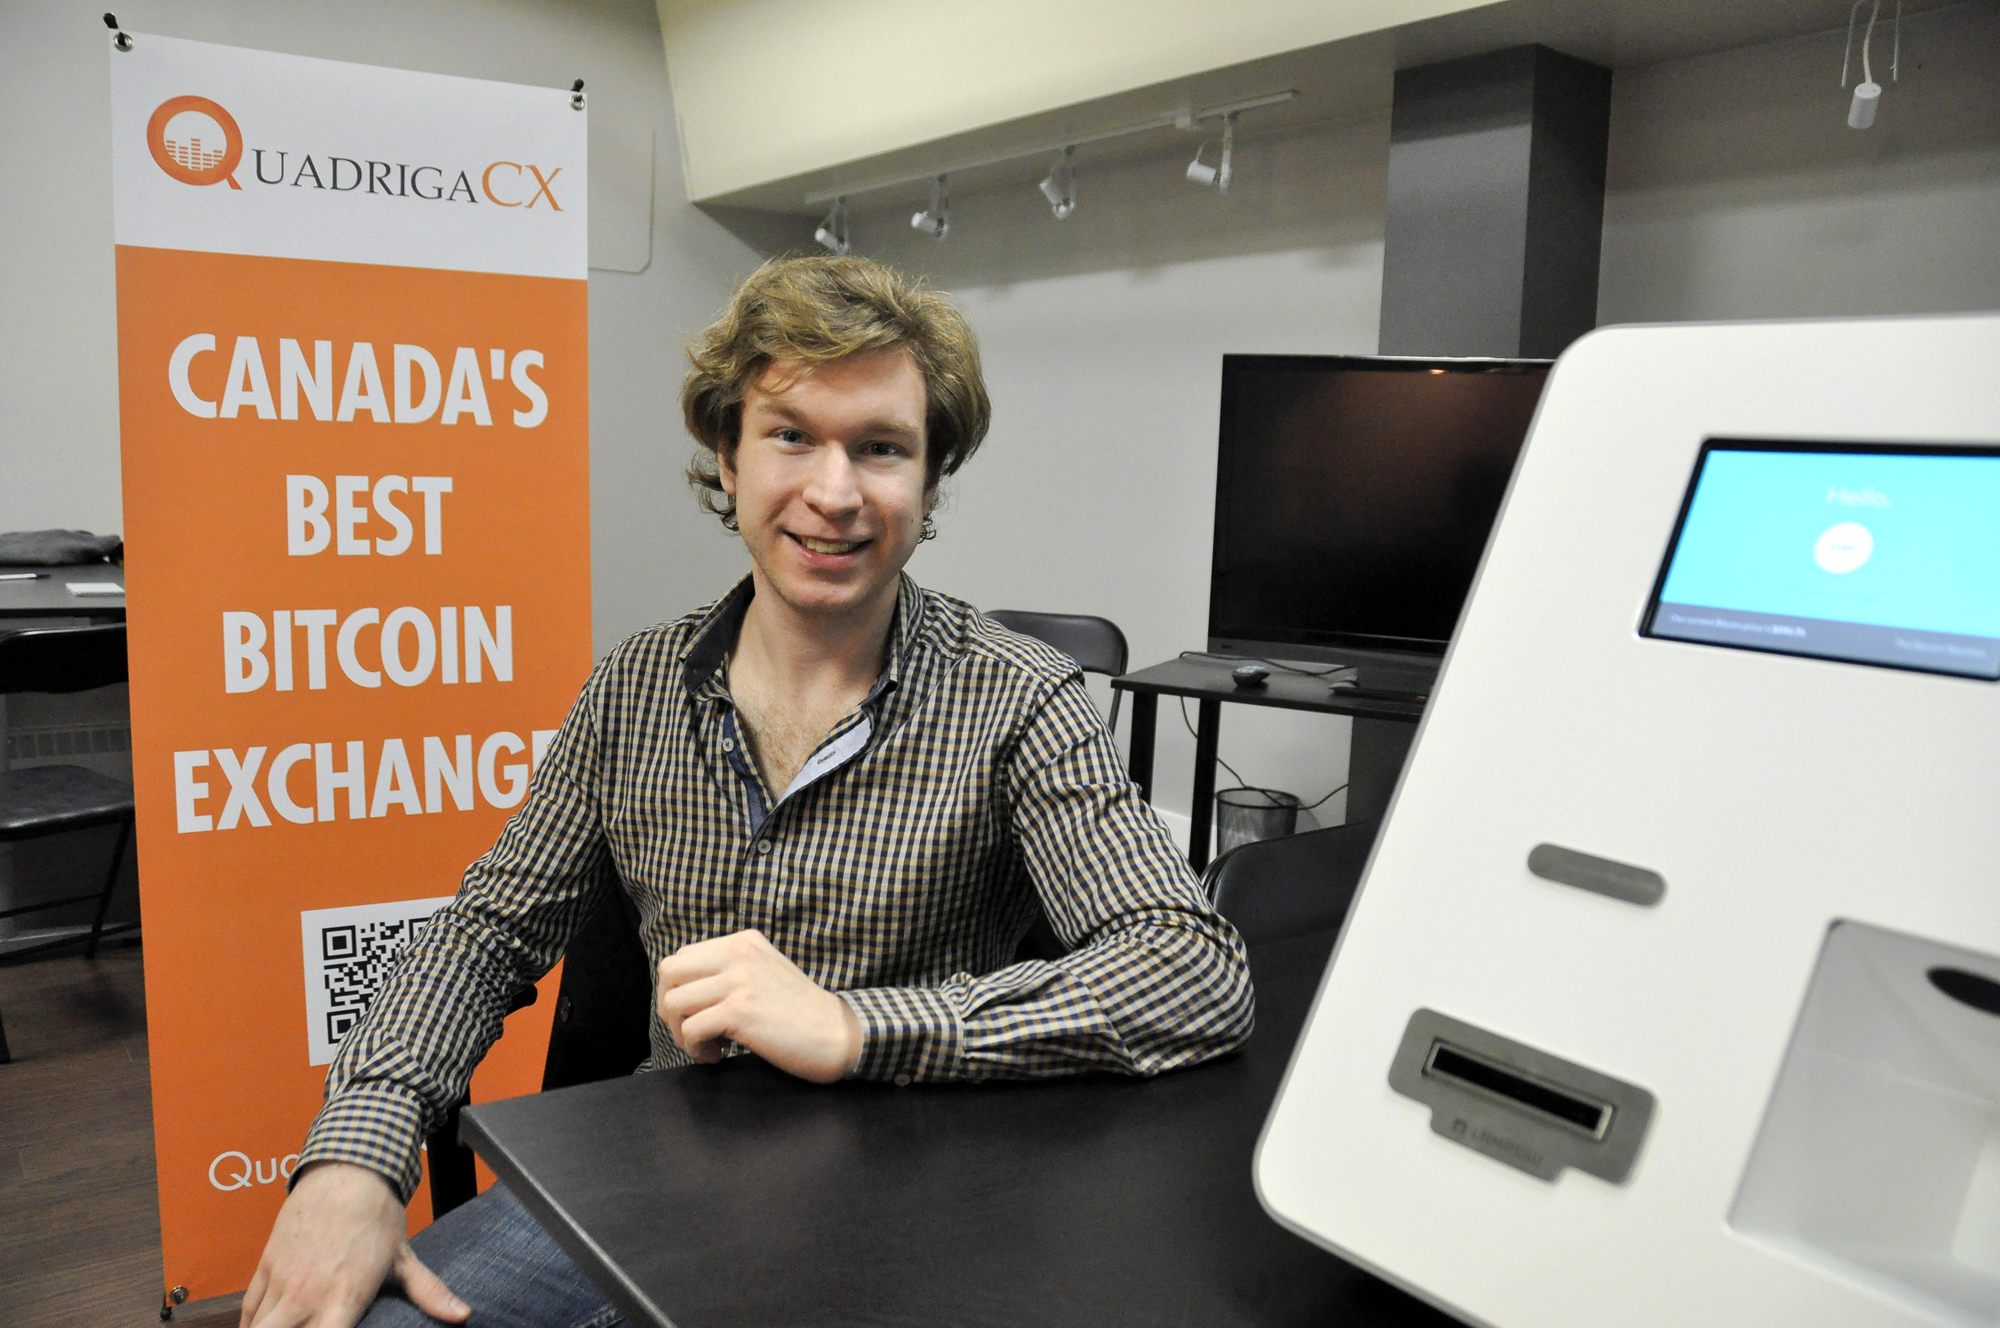 Cotten poses for a local newspaper a month after launching QuadrigaCX in 2014. He's sitting next to his first bitcoin ATM machine, located at his office in Vancouver's Gastown. (Stephen Hui/The Georgia Straight)